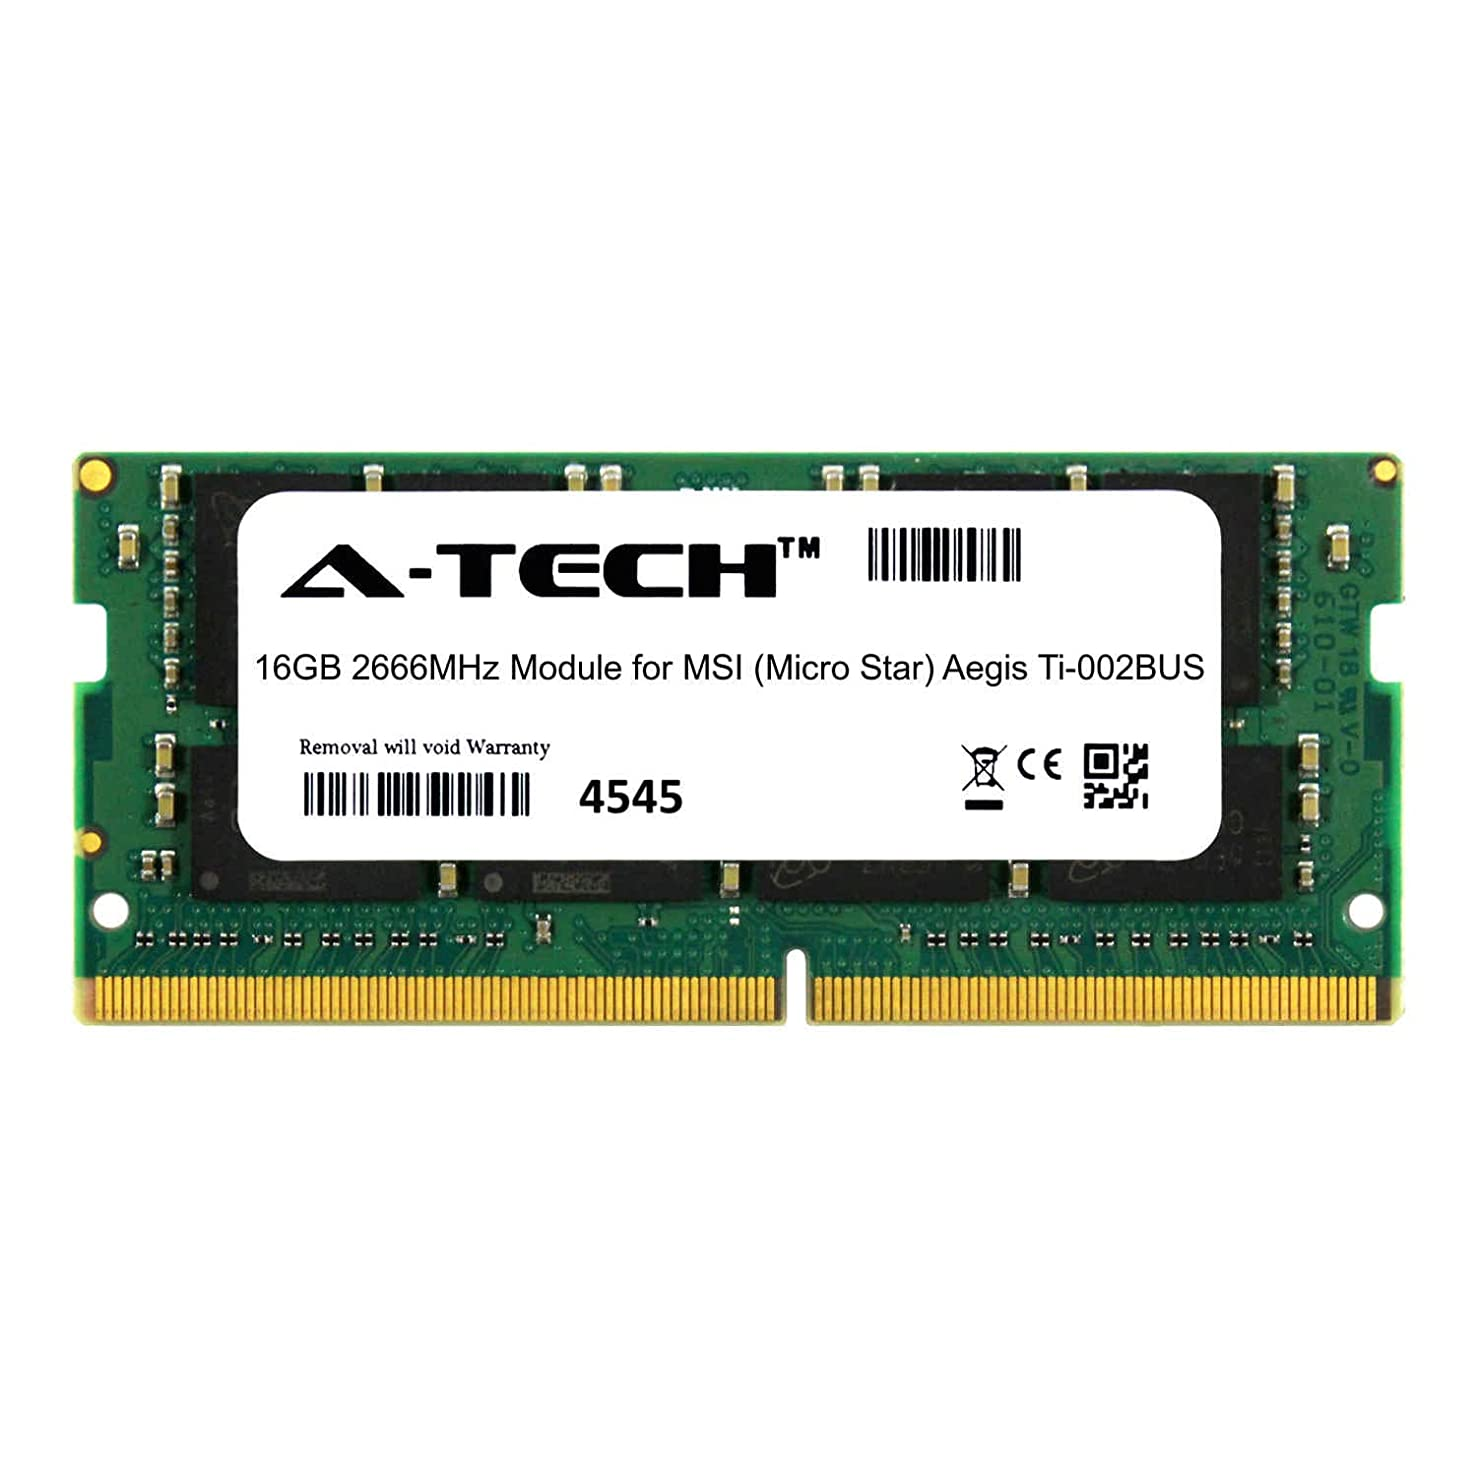 A-Tech 16GB Module for MSI (Micro Star) Aegis Ti-002BUS Laptop & Notebook Compatible DDR4 2666Mhz Memory Ram (ATMS368384A25832X1)